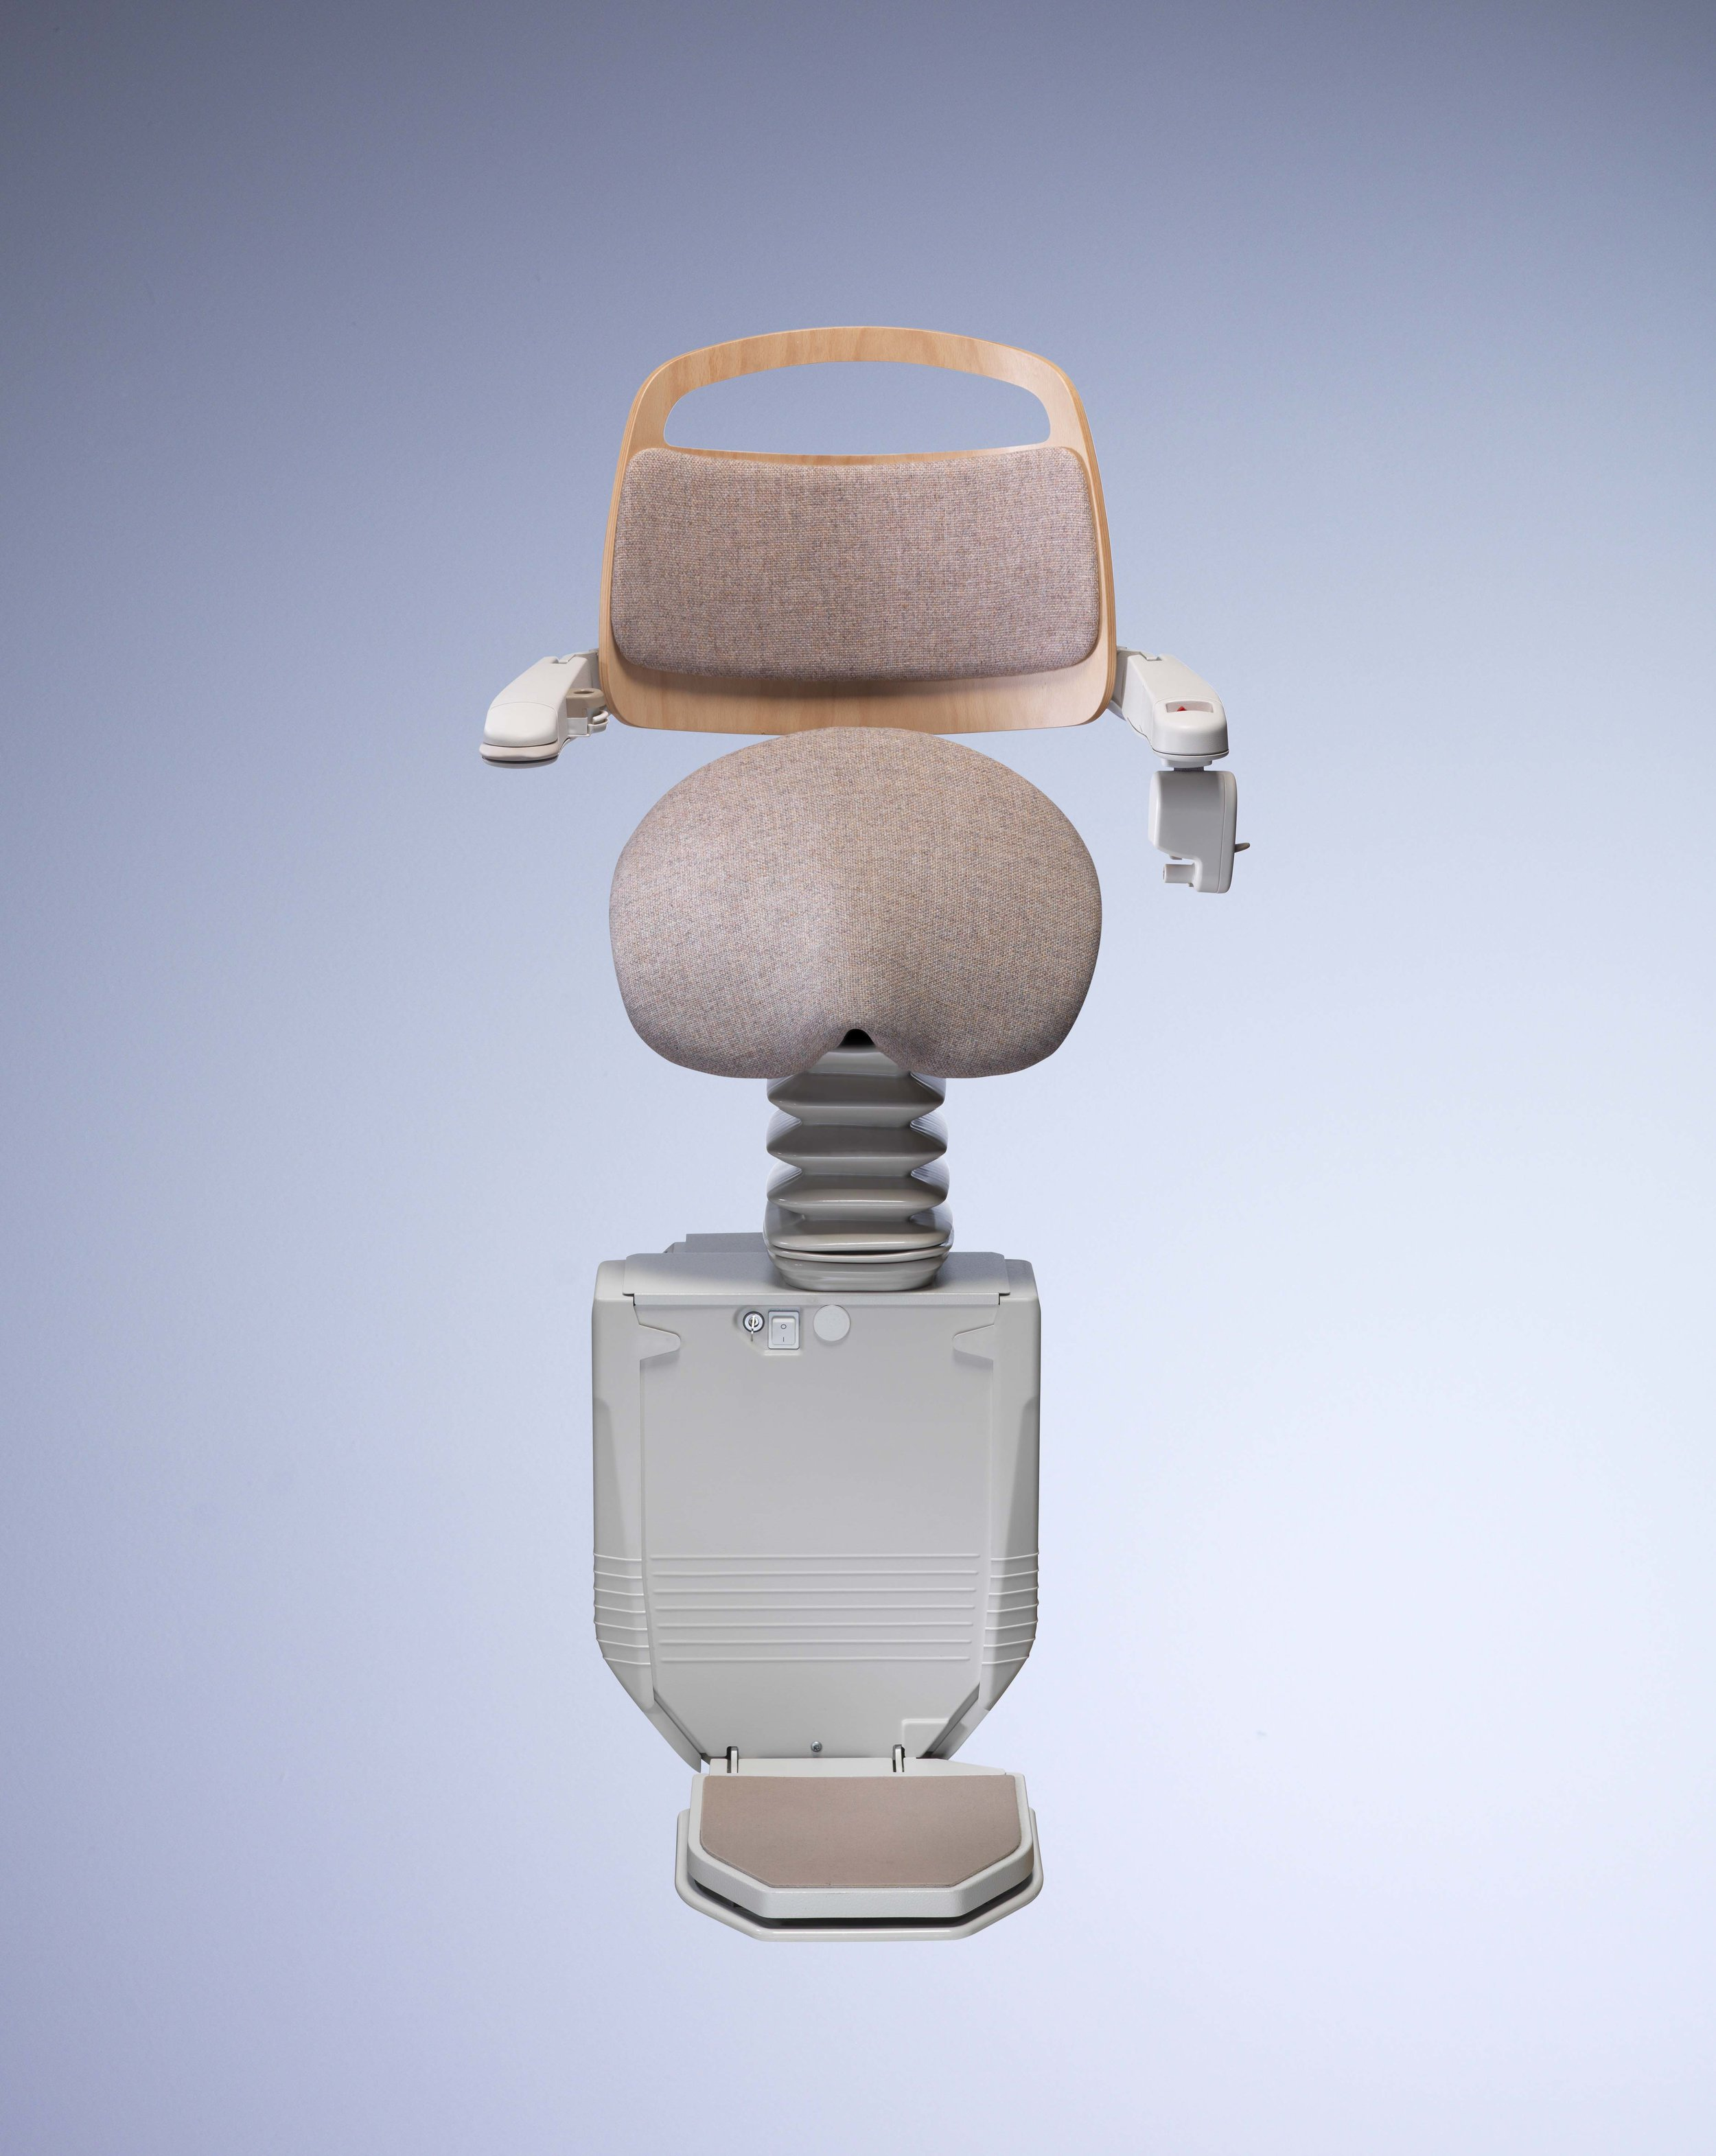 Stannah Sadler Seat For People with Limited Flexibility in Knees and hips